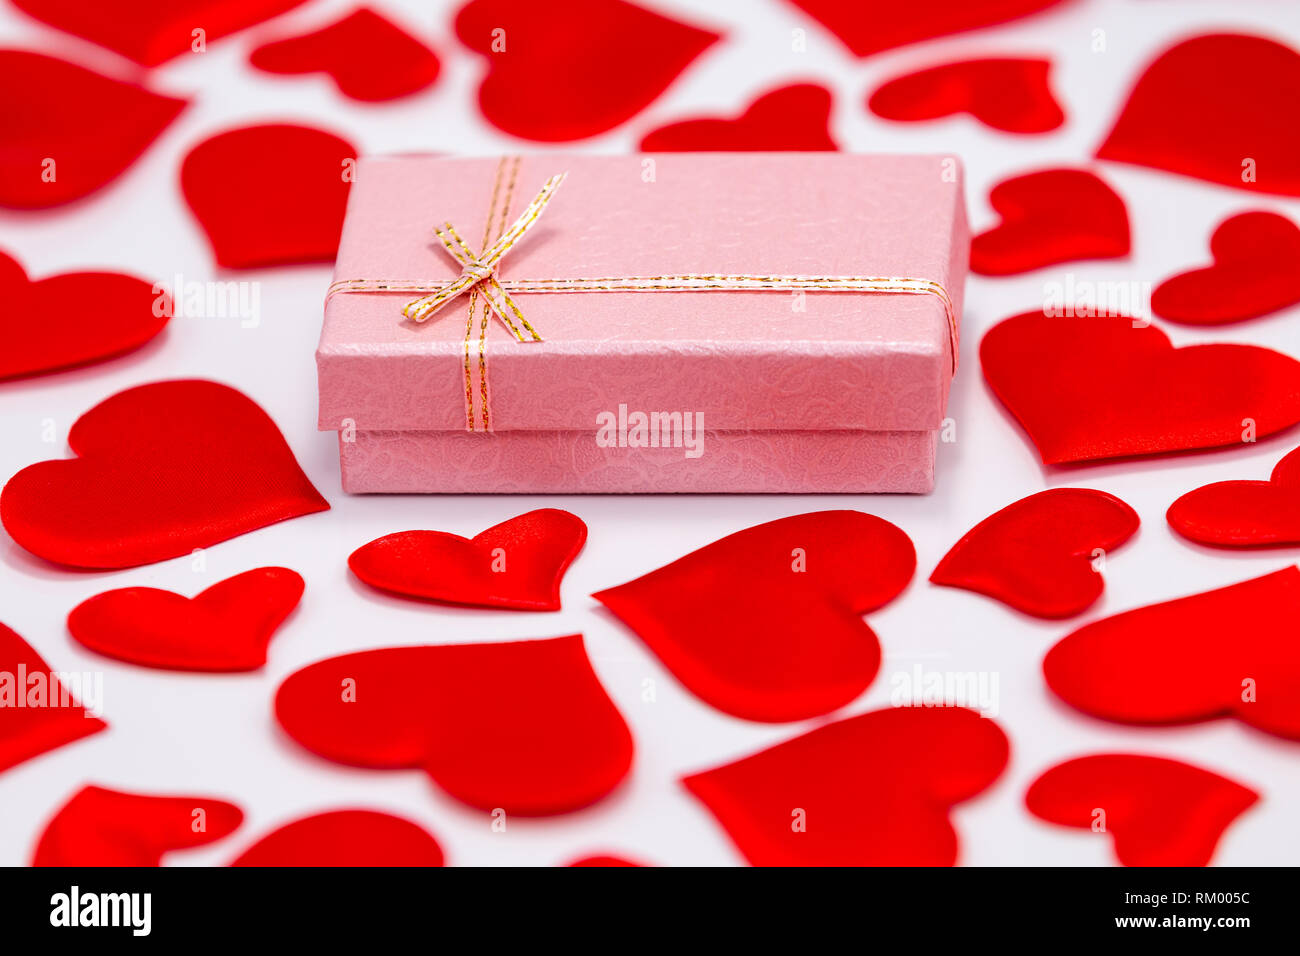 Top View of a Pink Gift Box Surrounded by Scattered Hearts on White Background. St. Valentines Day Concept - Stock Image